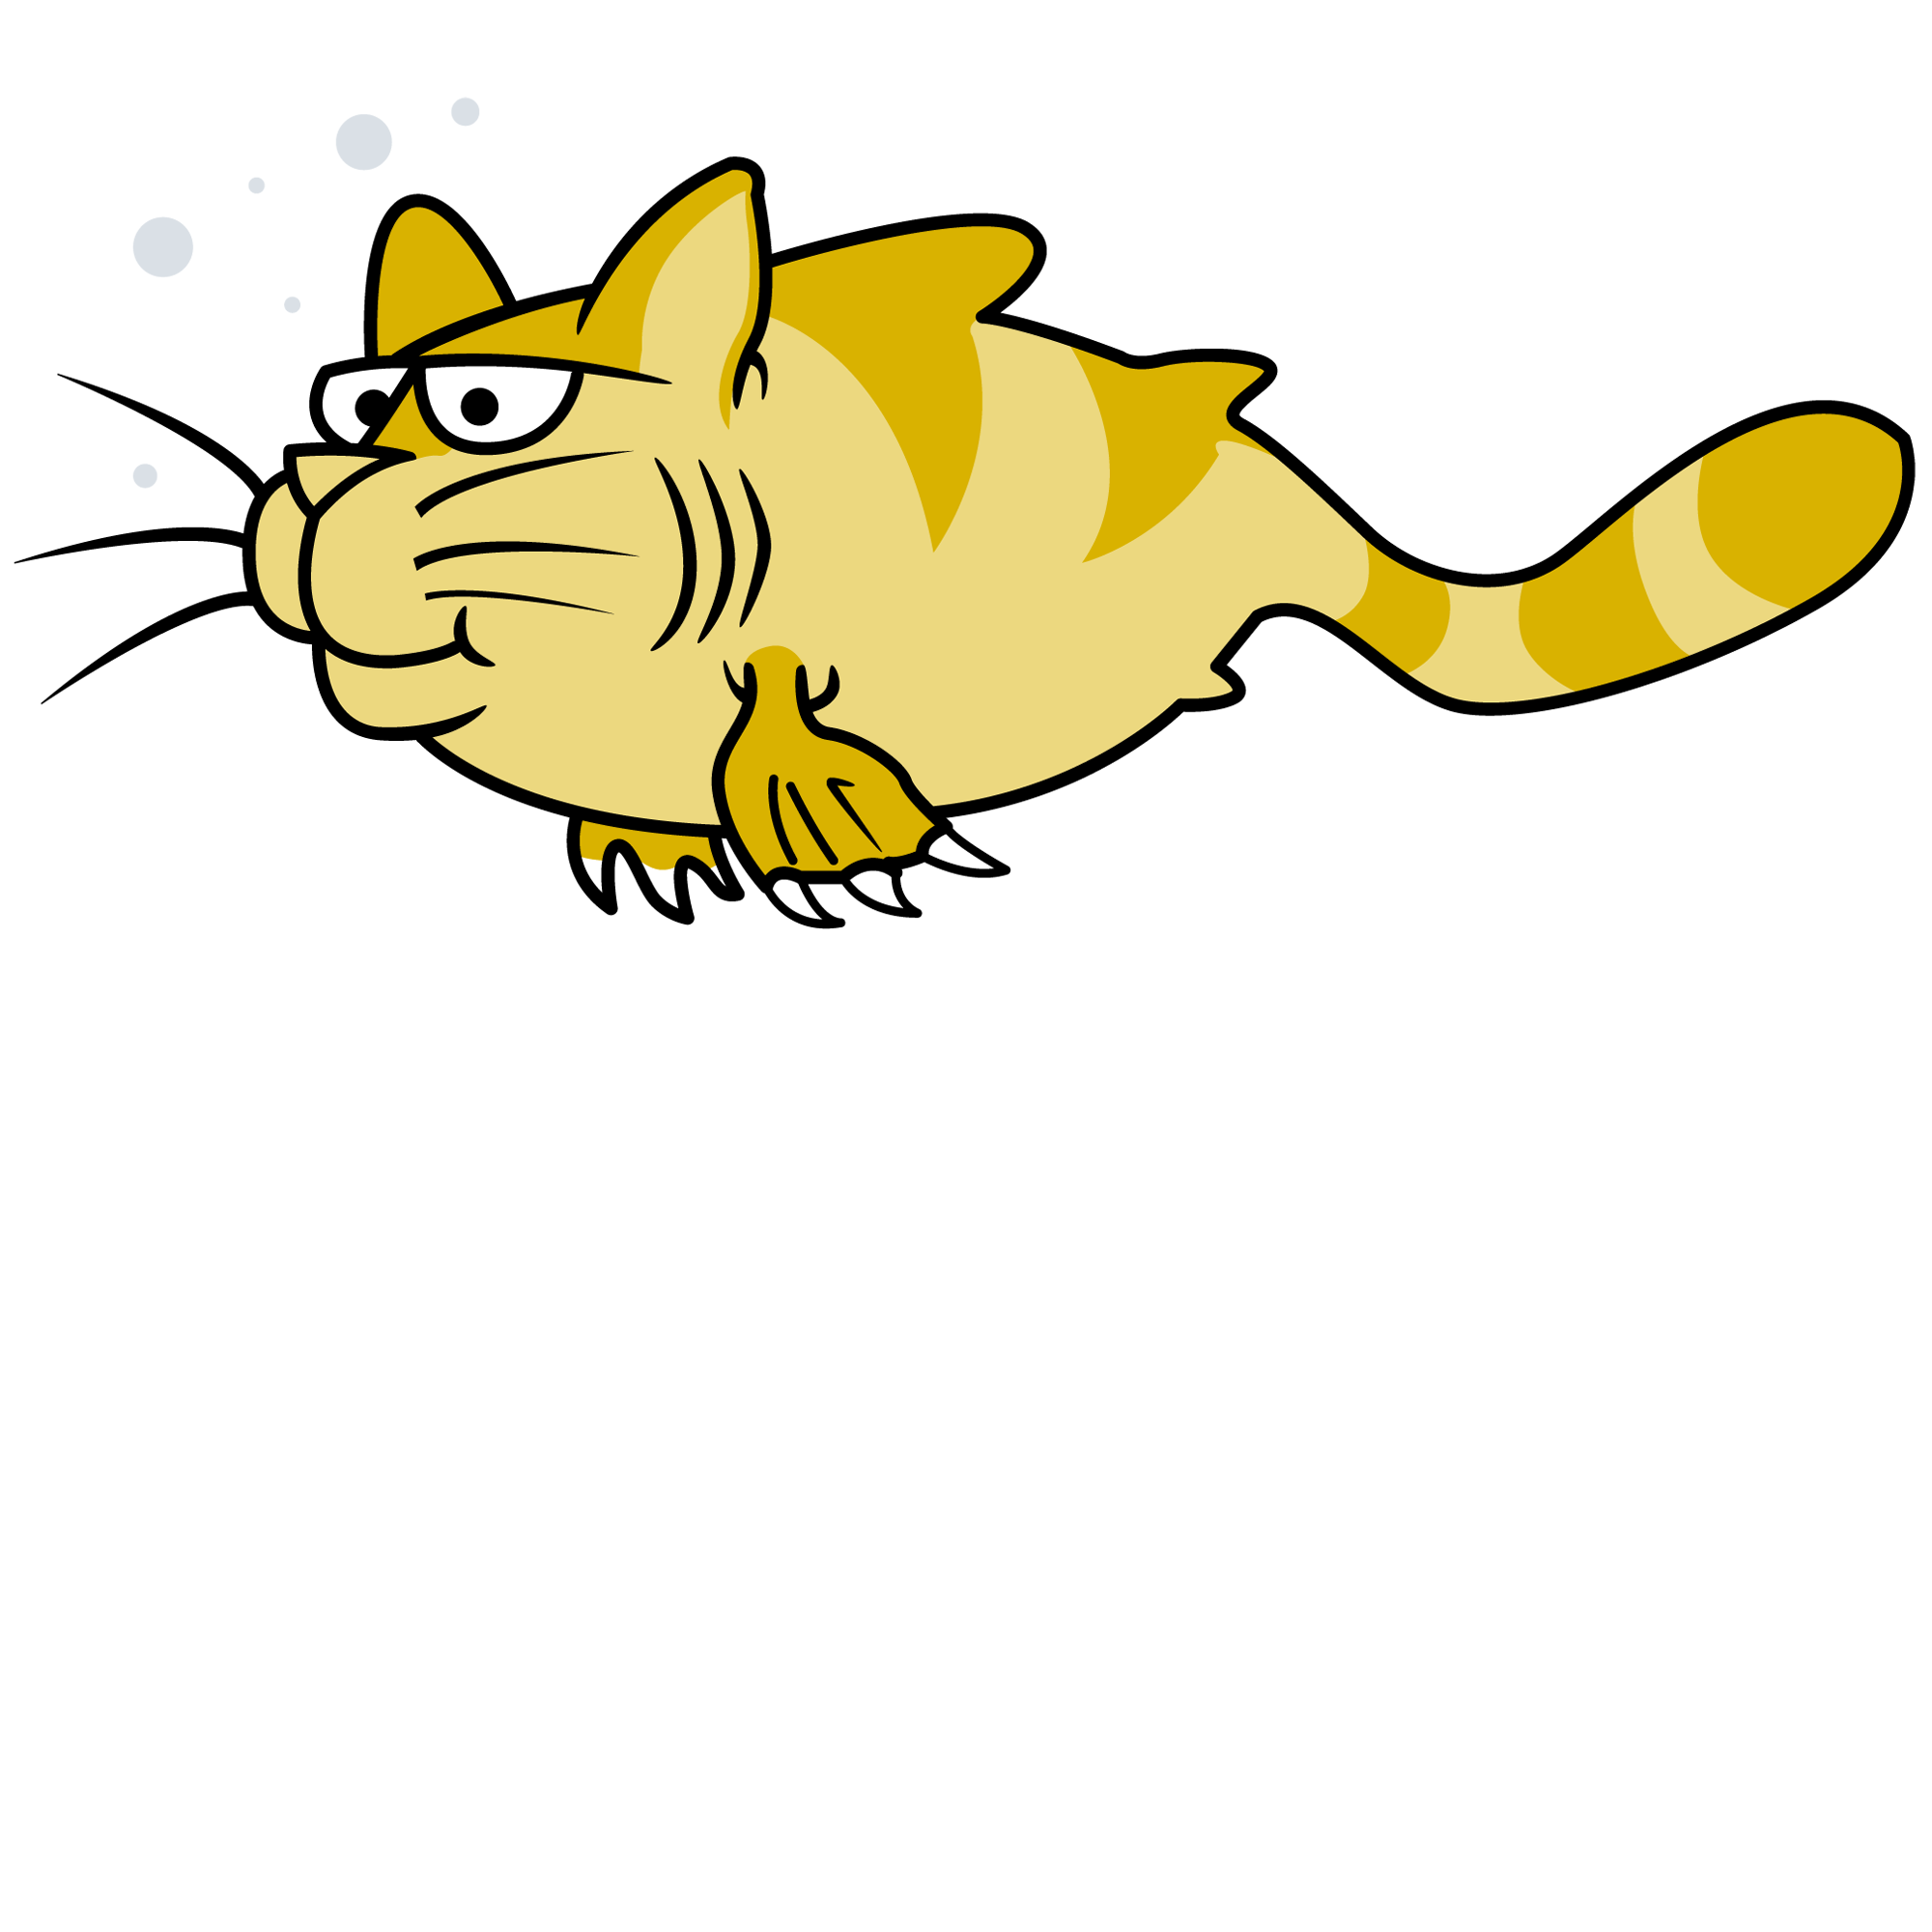 Wallet clipart animated. International cat day with